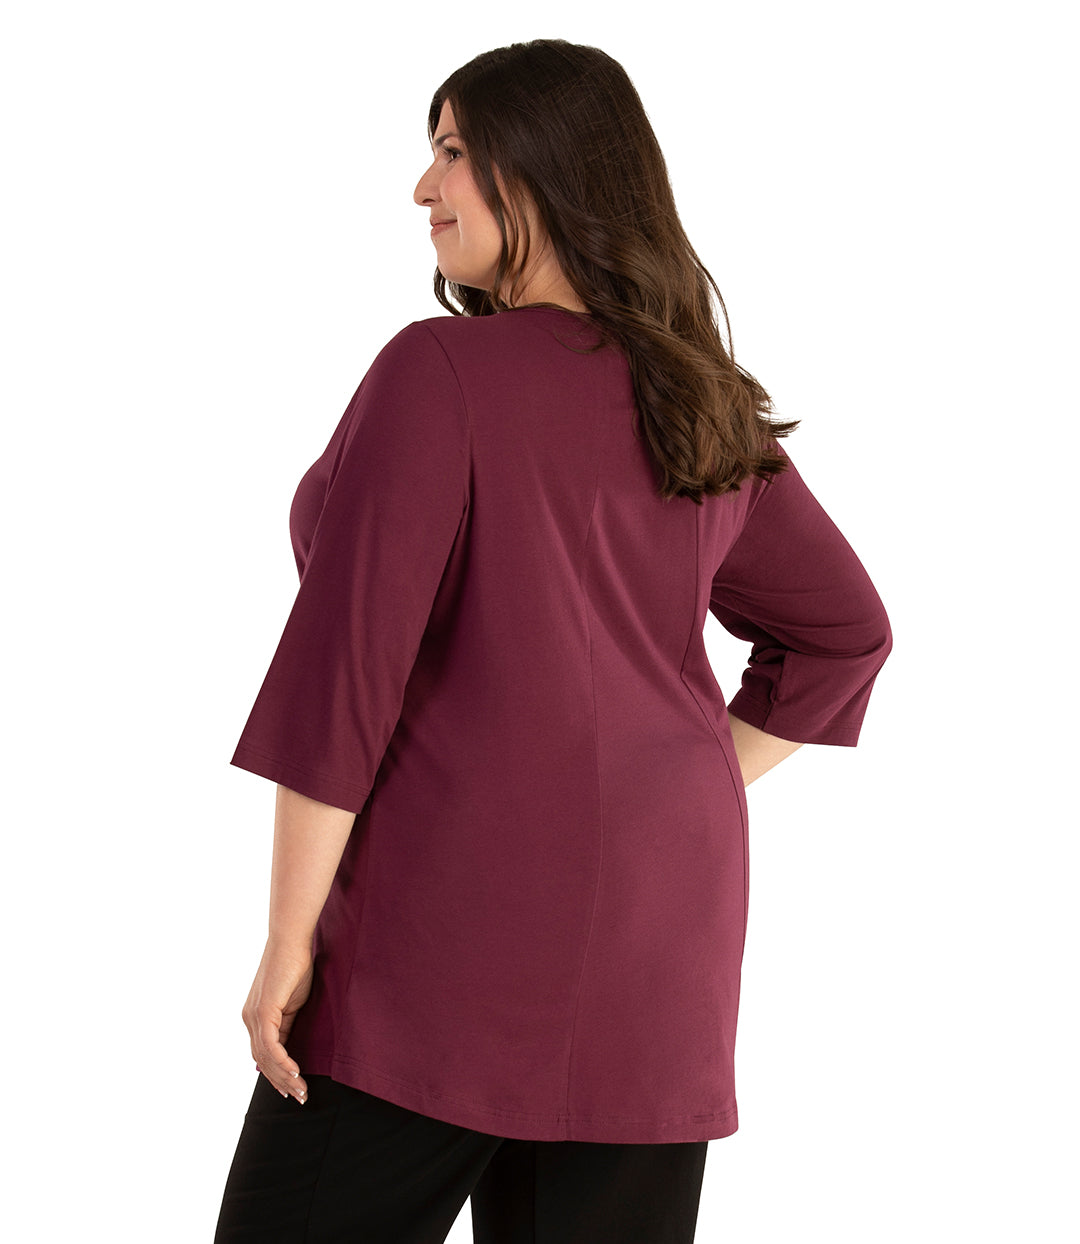 Stretch Naturals Lite 3/4 Sleeve Swing Top-Tops 3/4 Sleeve Tunic-Hop Wo Trading Co Ltd-XL-Dark Plum-JunoActive